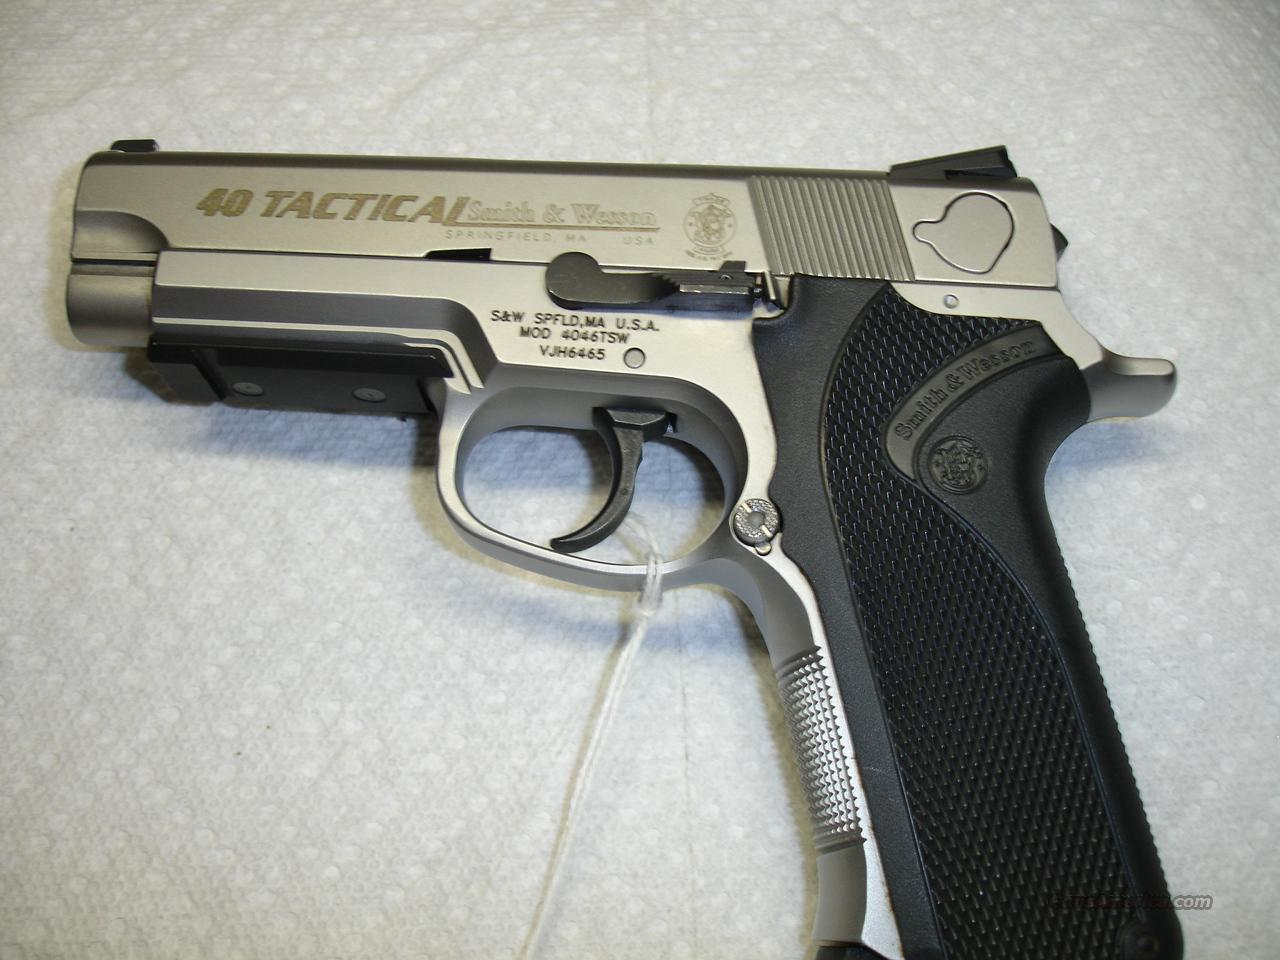 S&W  40 TACTICAL  Guns > Pistols > Smith & Wesson Pistols - Autos > Steel Frame